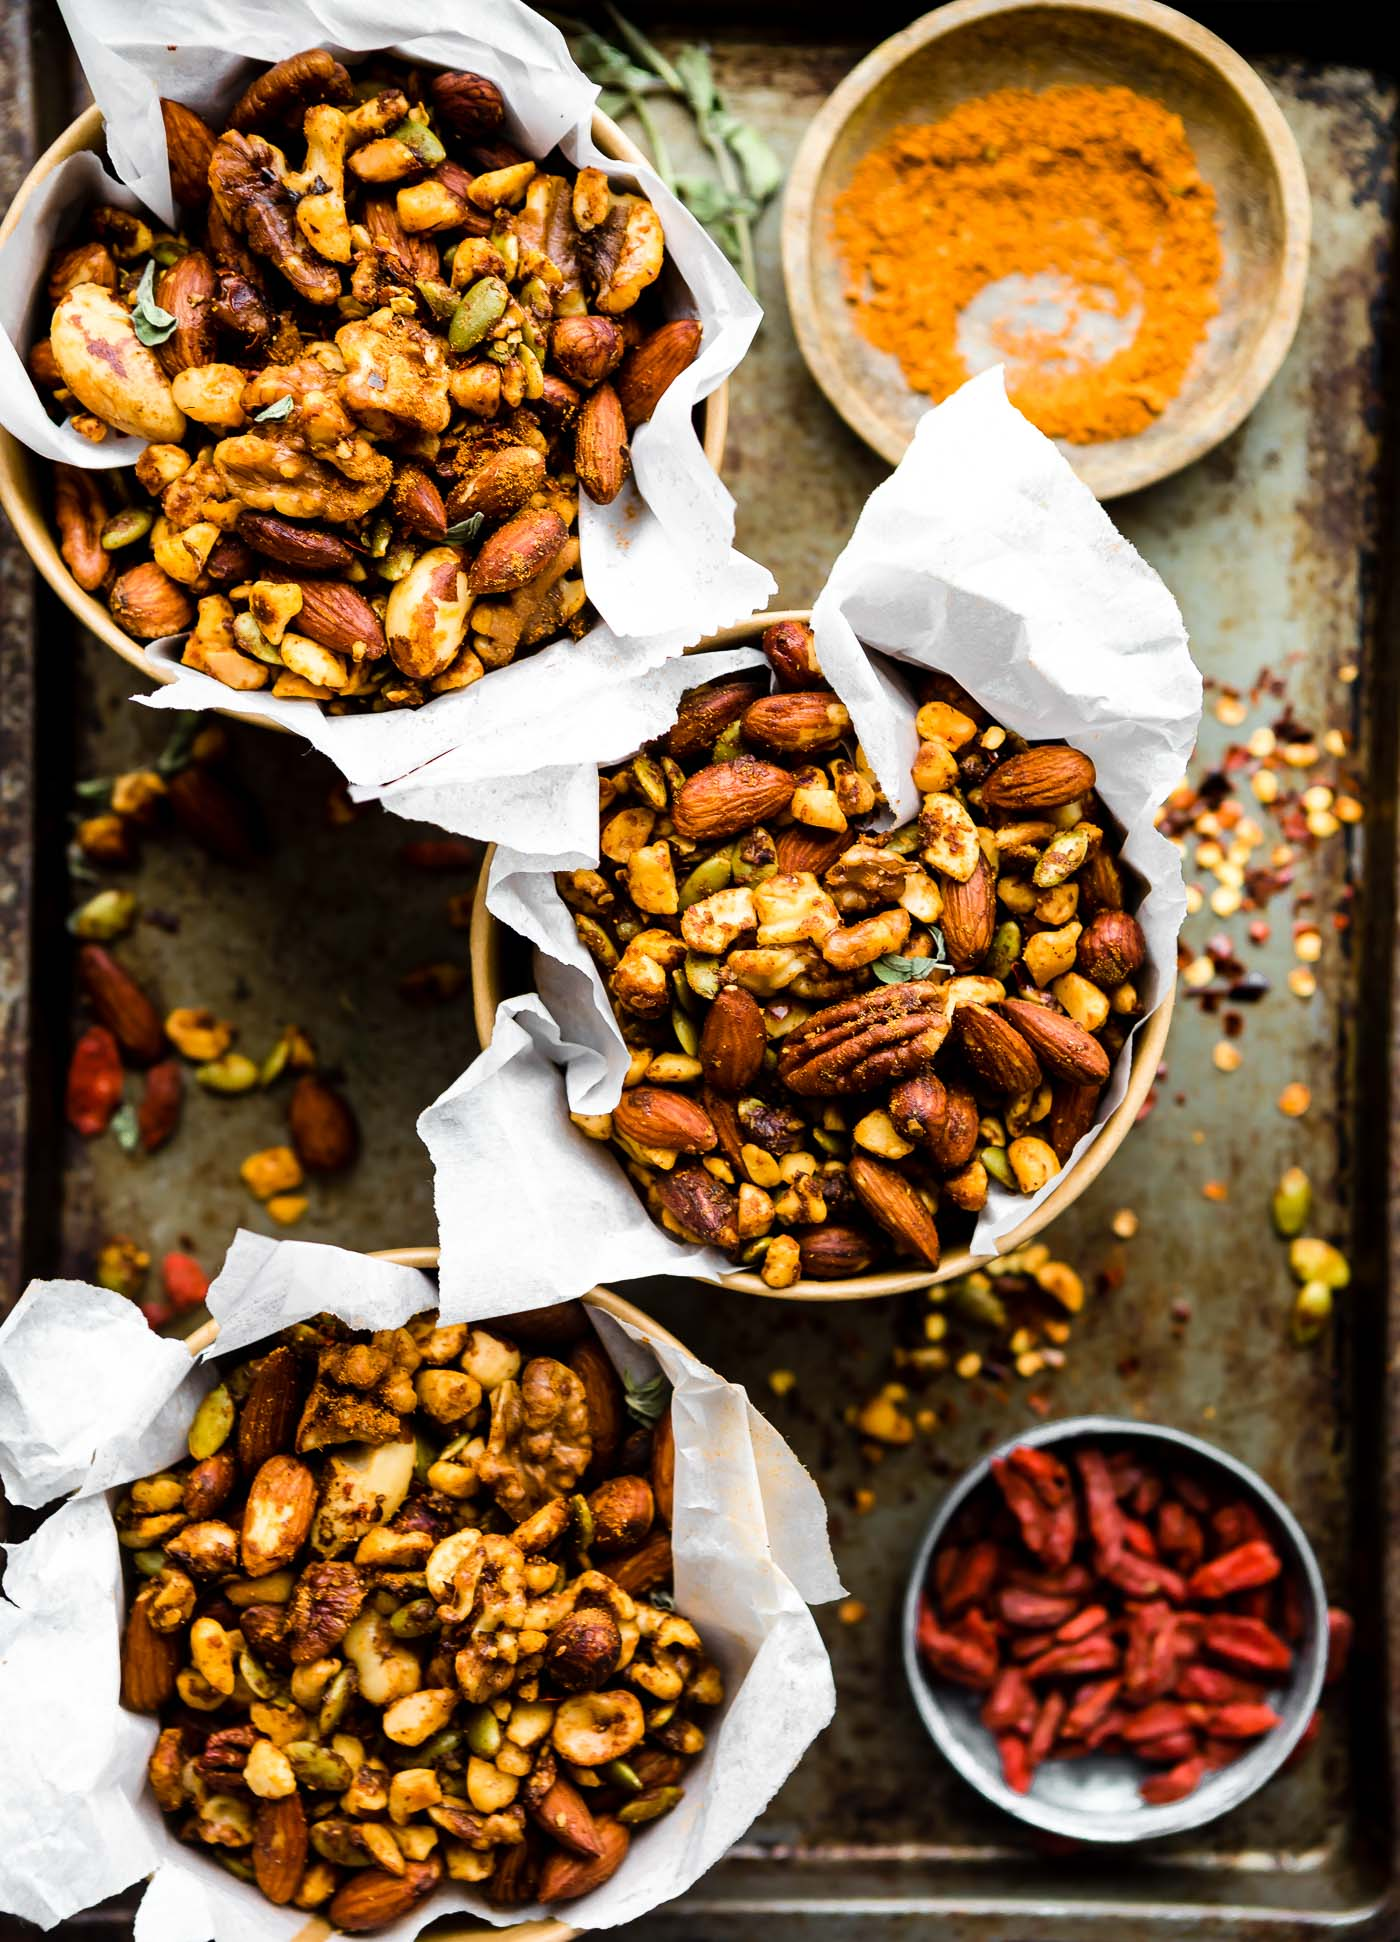 This Thai Curry Spiced Slow Cooker snack mix on platter with spices. paleo friendly and vegan friendly. A bonus for sure!